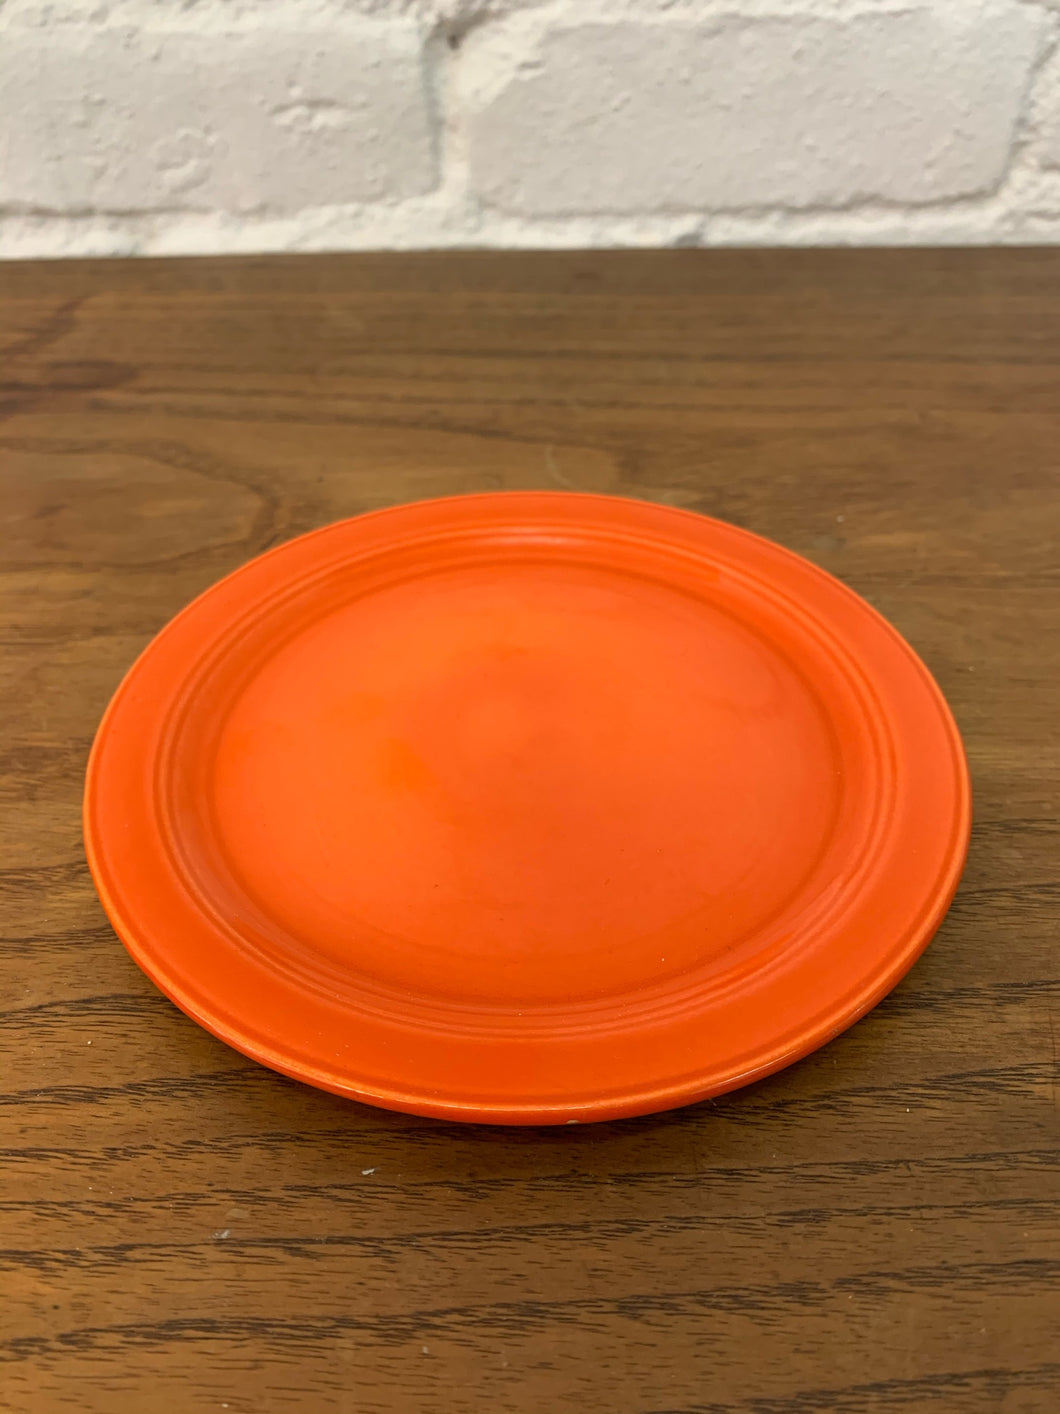 Fire Orange California Ware Plate